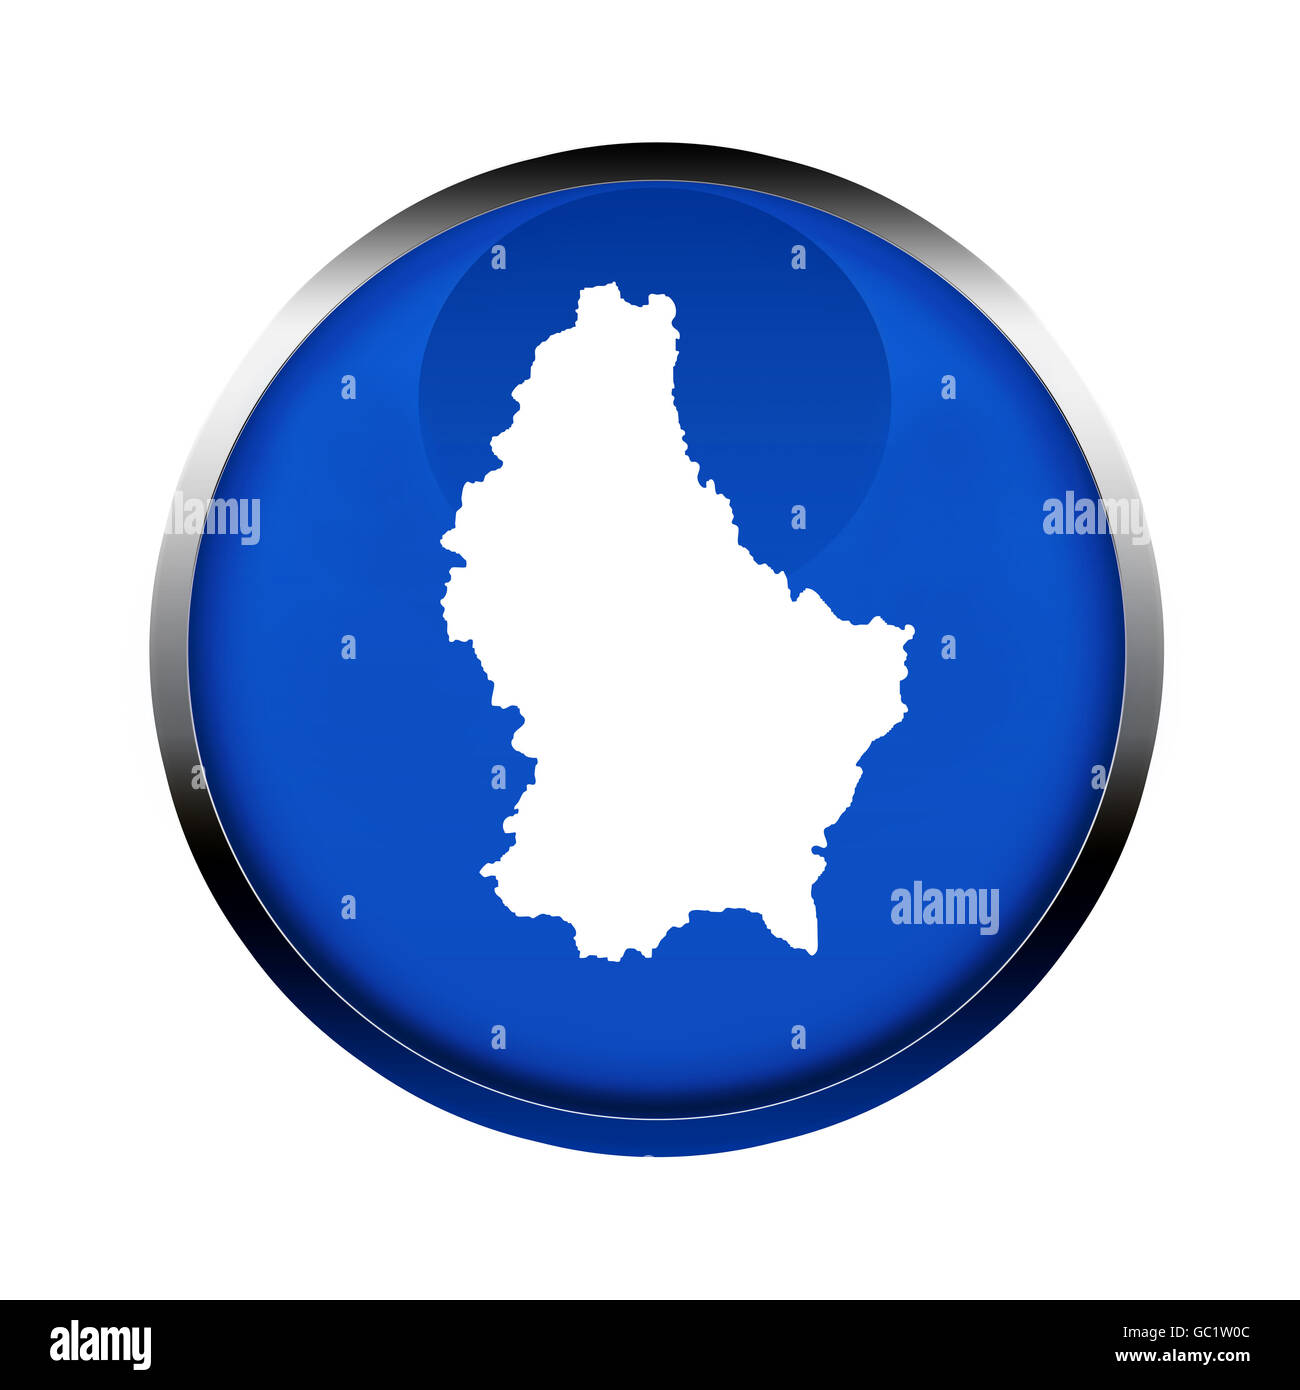 Luxembourg map button in the colors of the European Union. - Stock Image